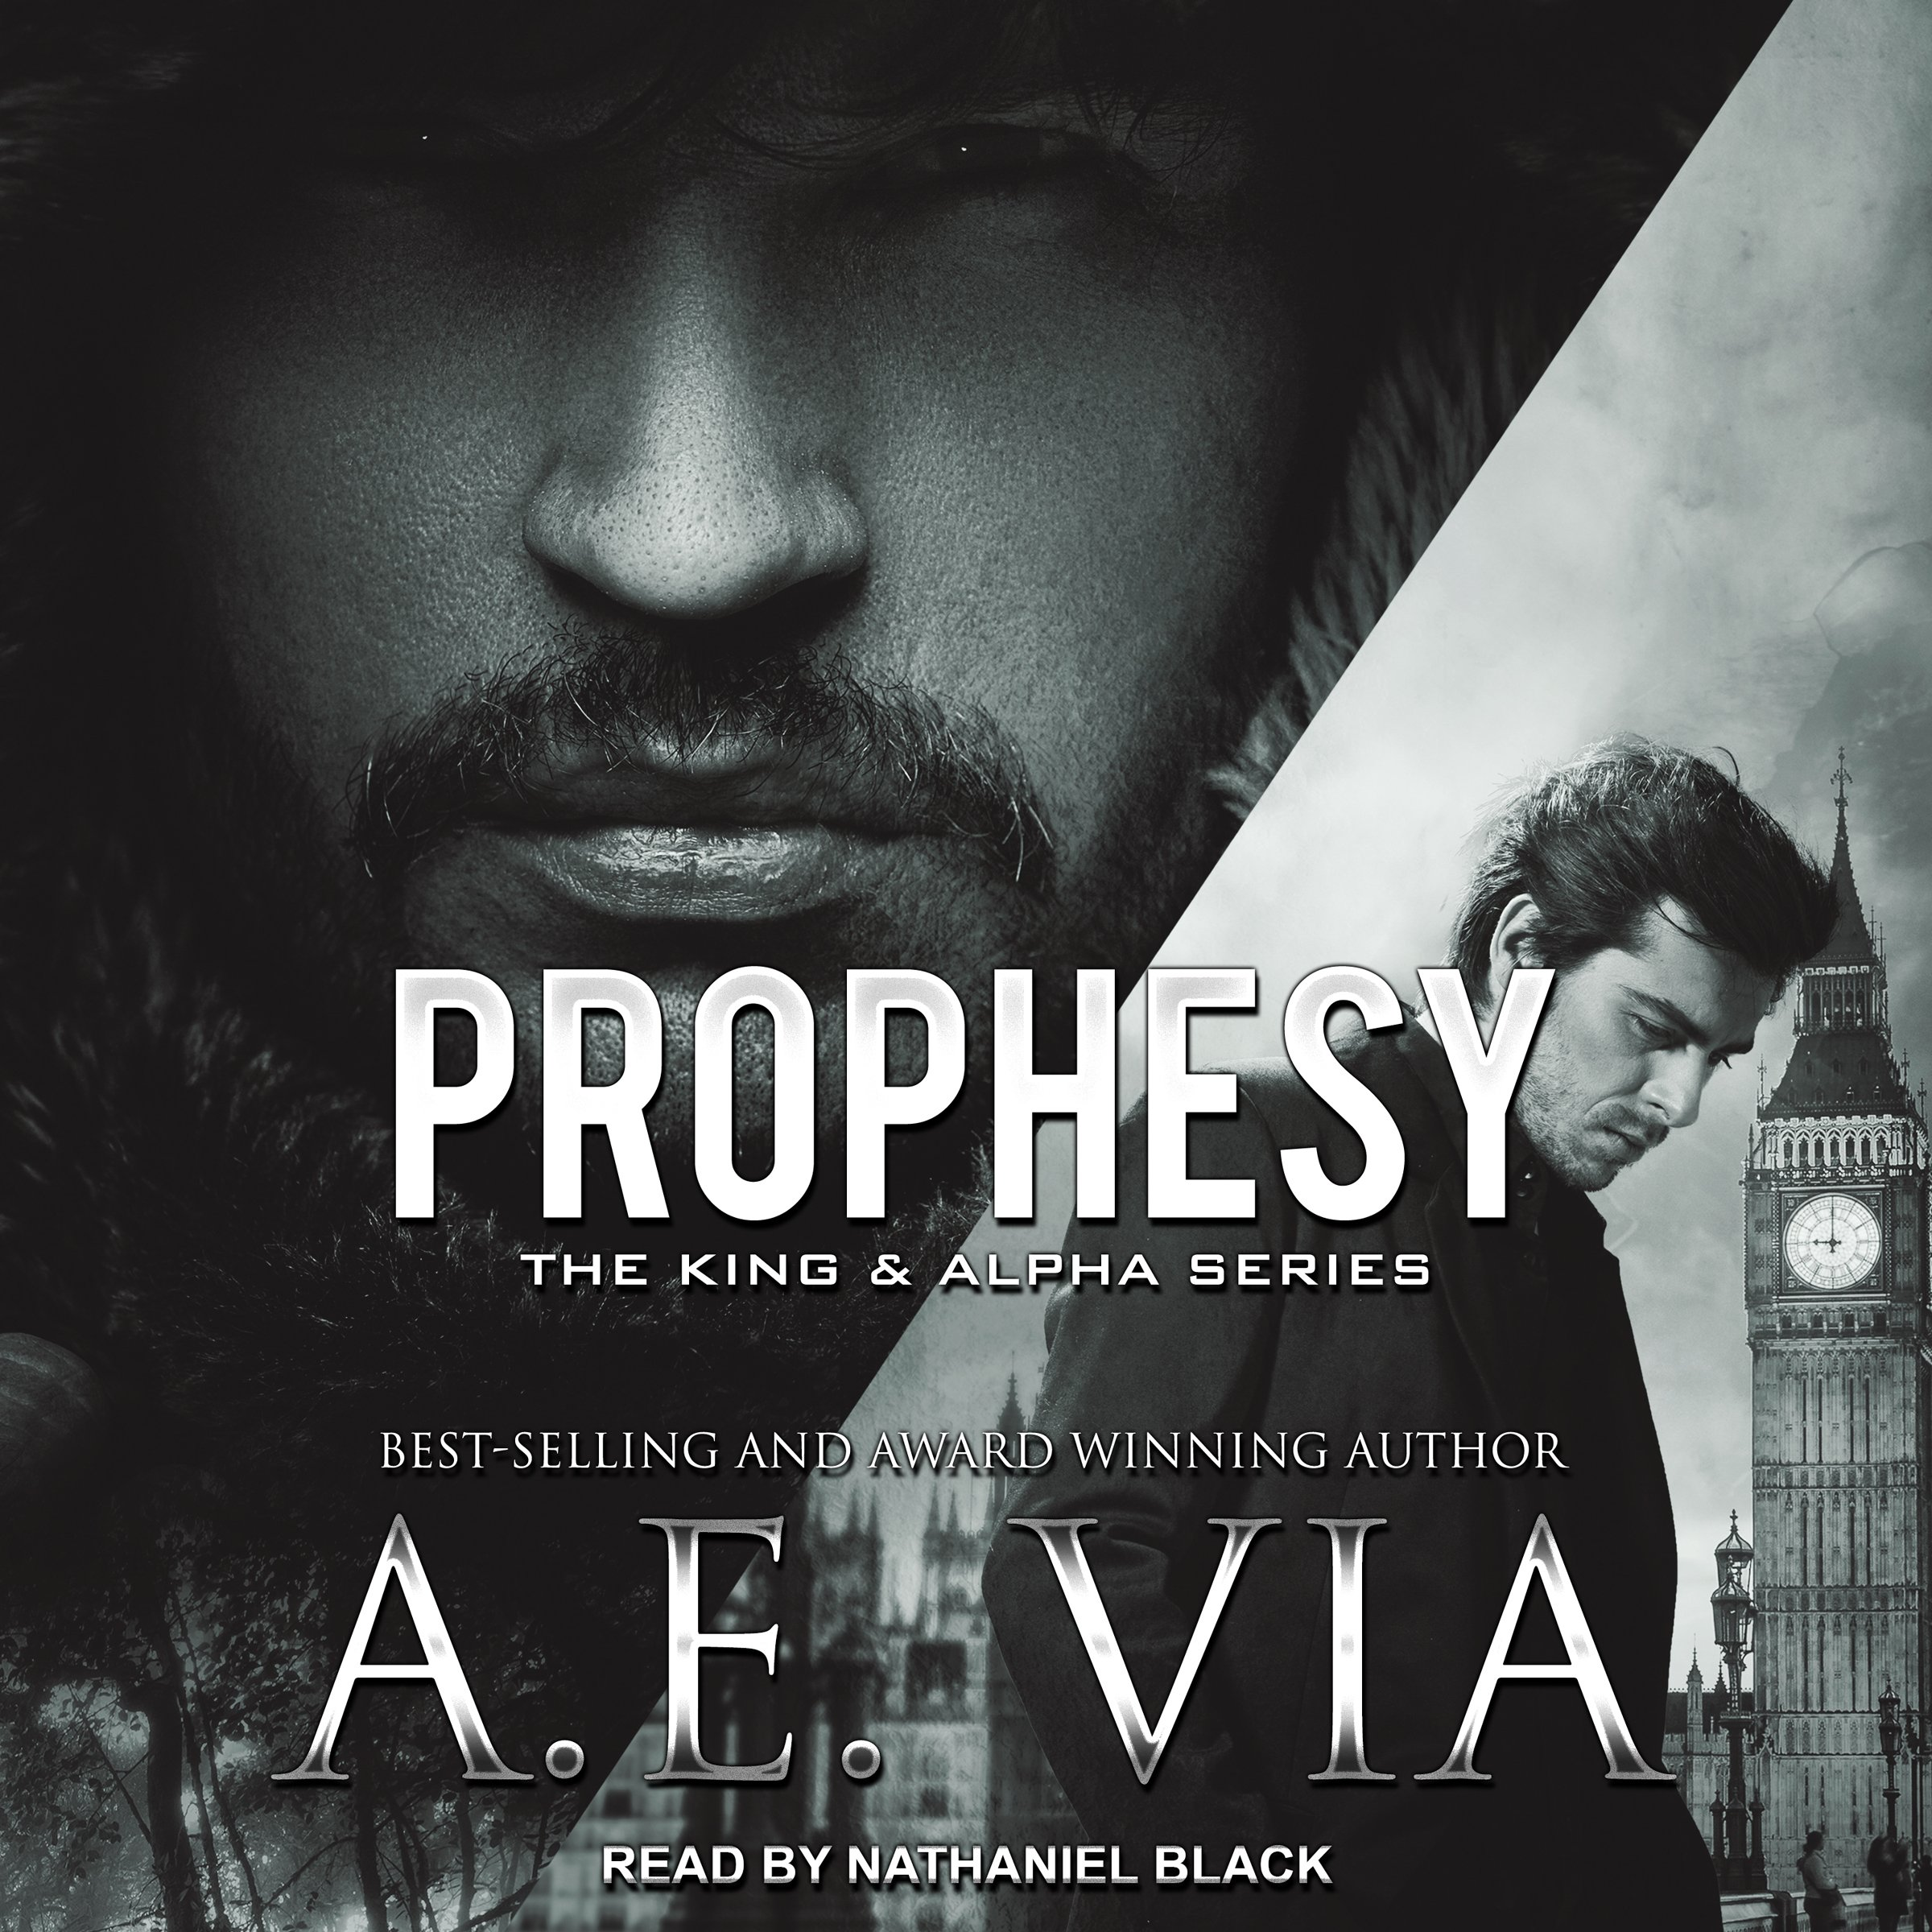 Prophesy: The King & Alpha Series Series, Book 1